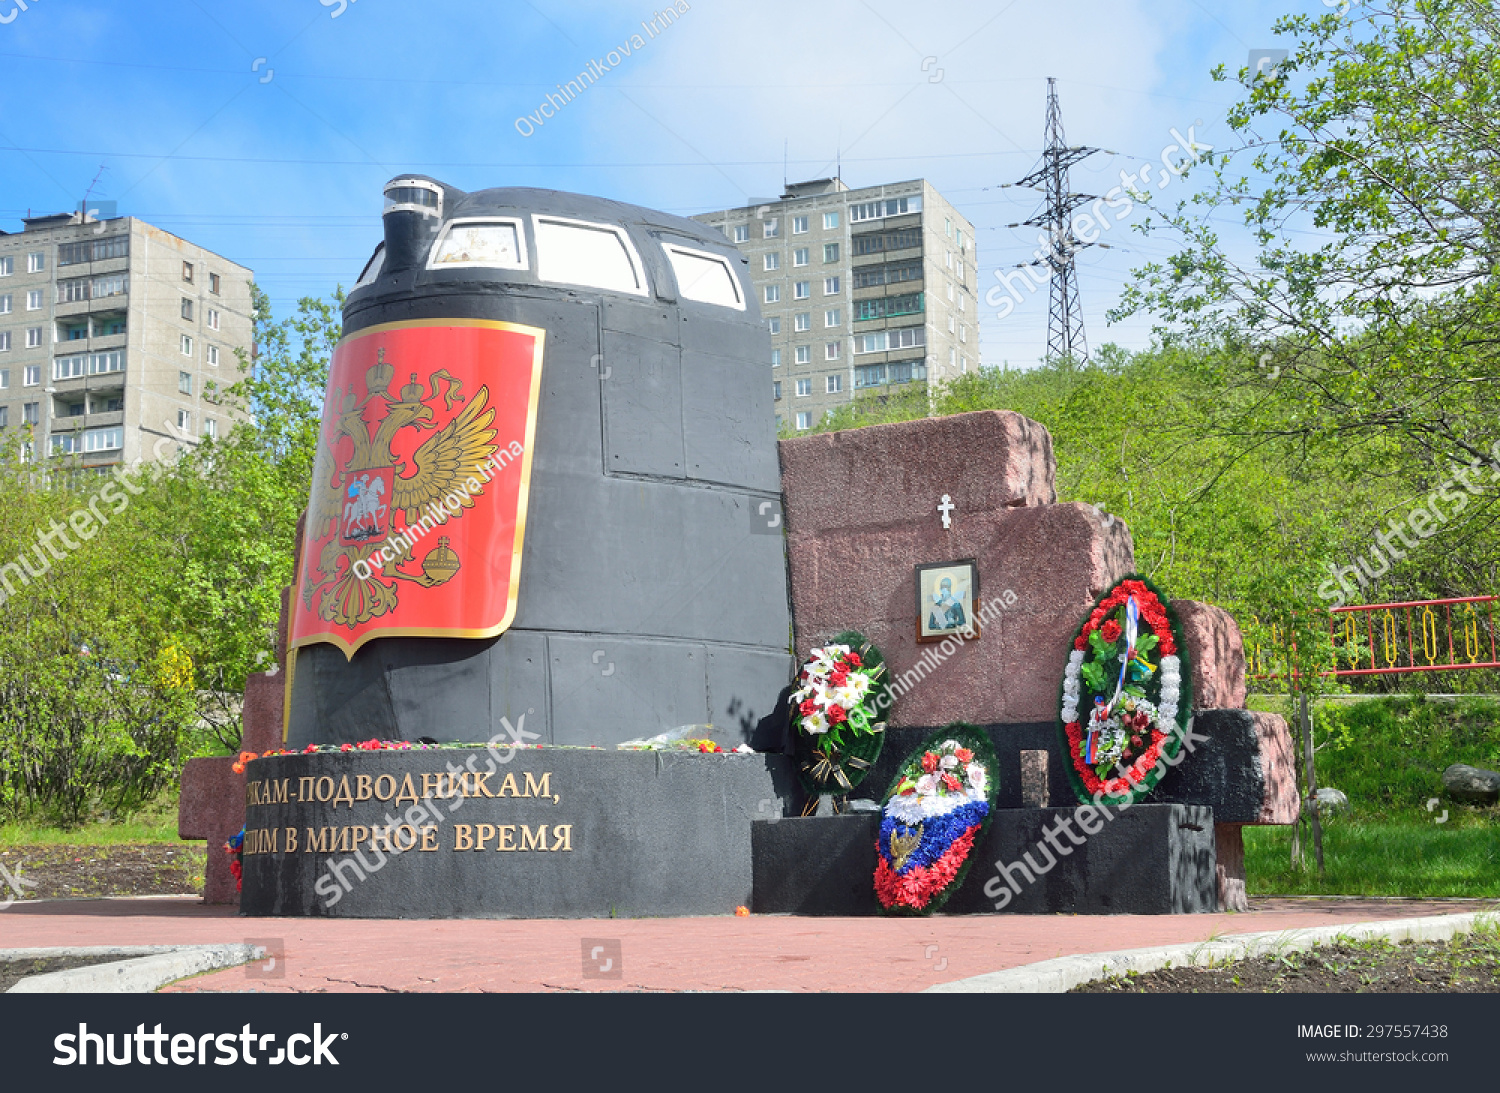 the causes of the sunken russian nuclear submarine kursk Kursk submarine tragedy january two years after the kursk submarine disaster left 118 russian the ambitious engineering operation to raise the sunken.